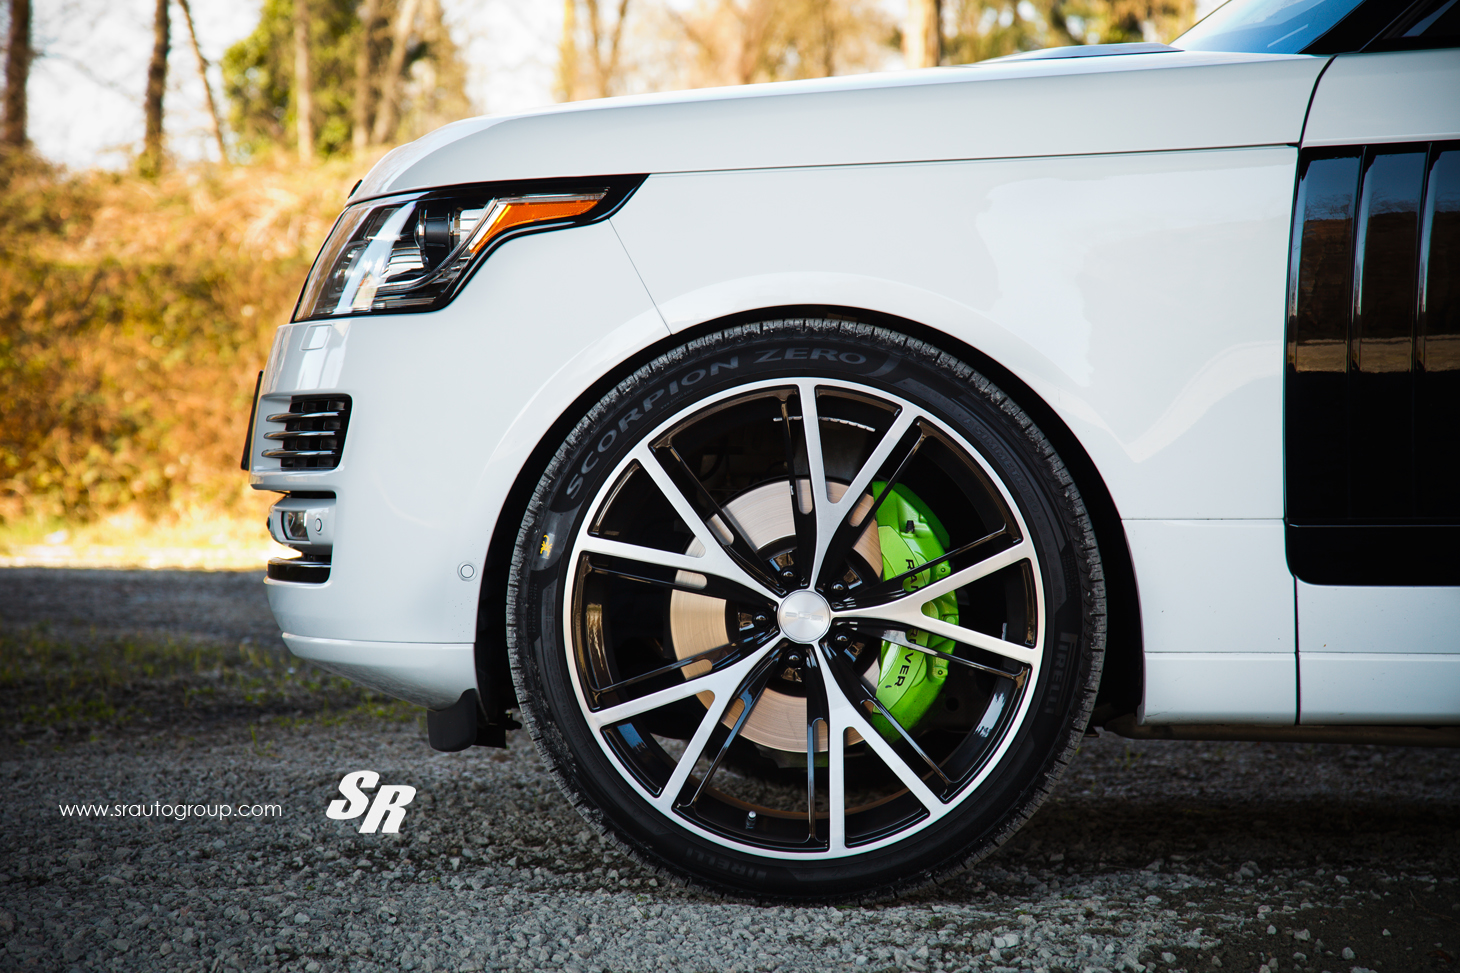 2013 Range Rover Gets Pur Wheels Lambo Green Calipers